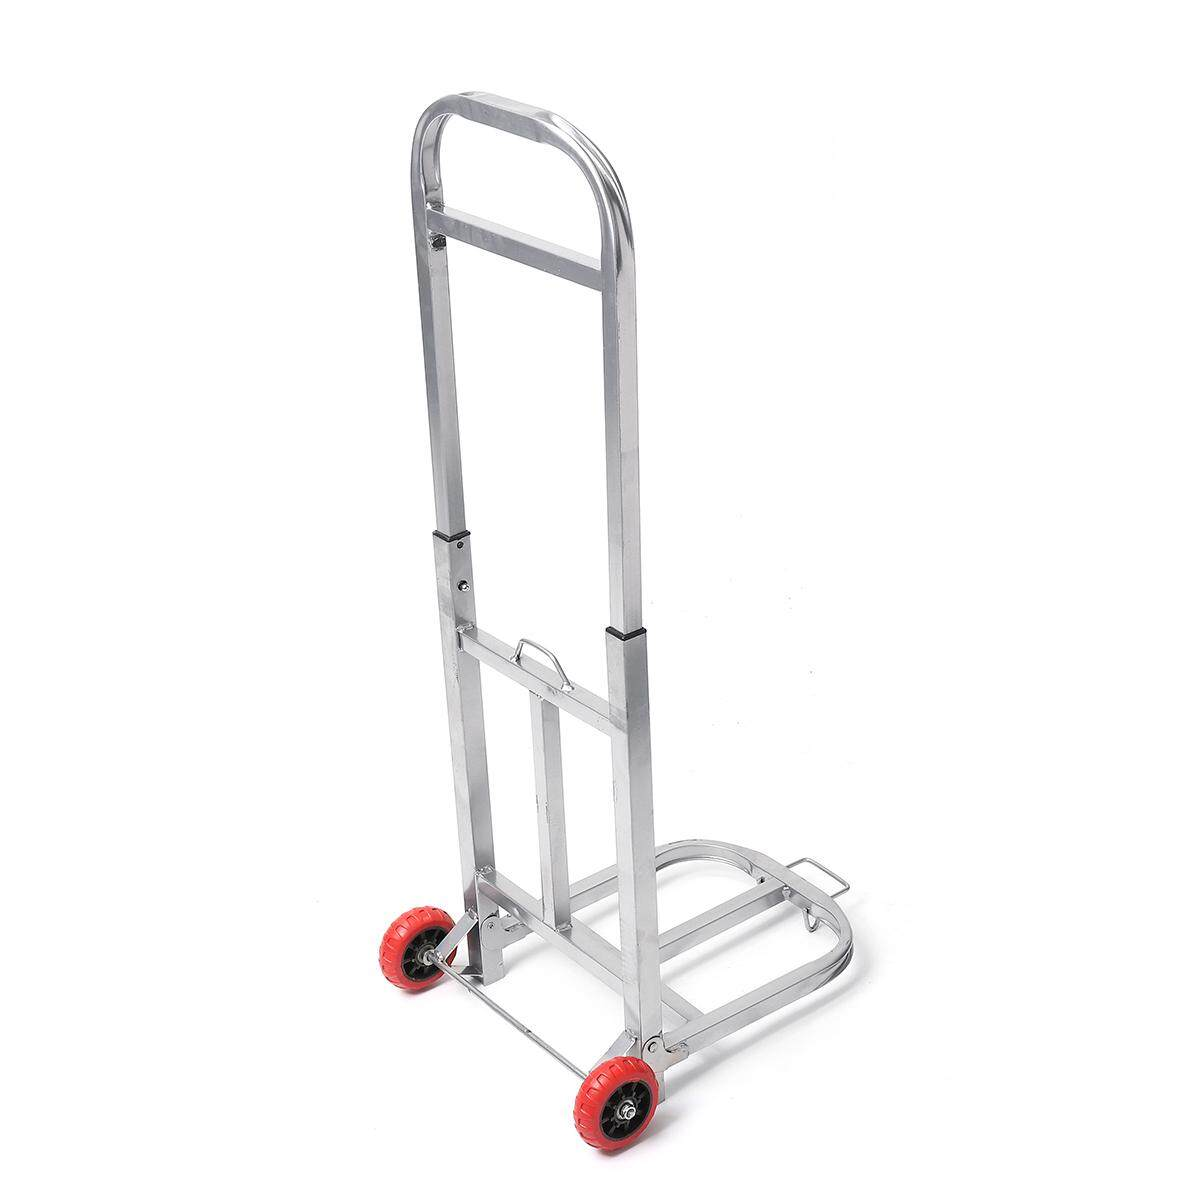 20kg Heavy Duty Lightweight Folding Foldable Hand Cart Trolley Barrow Sack Truck By Glimmer.